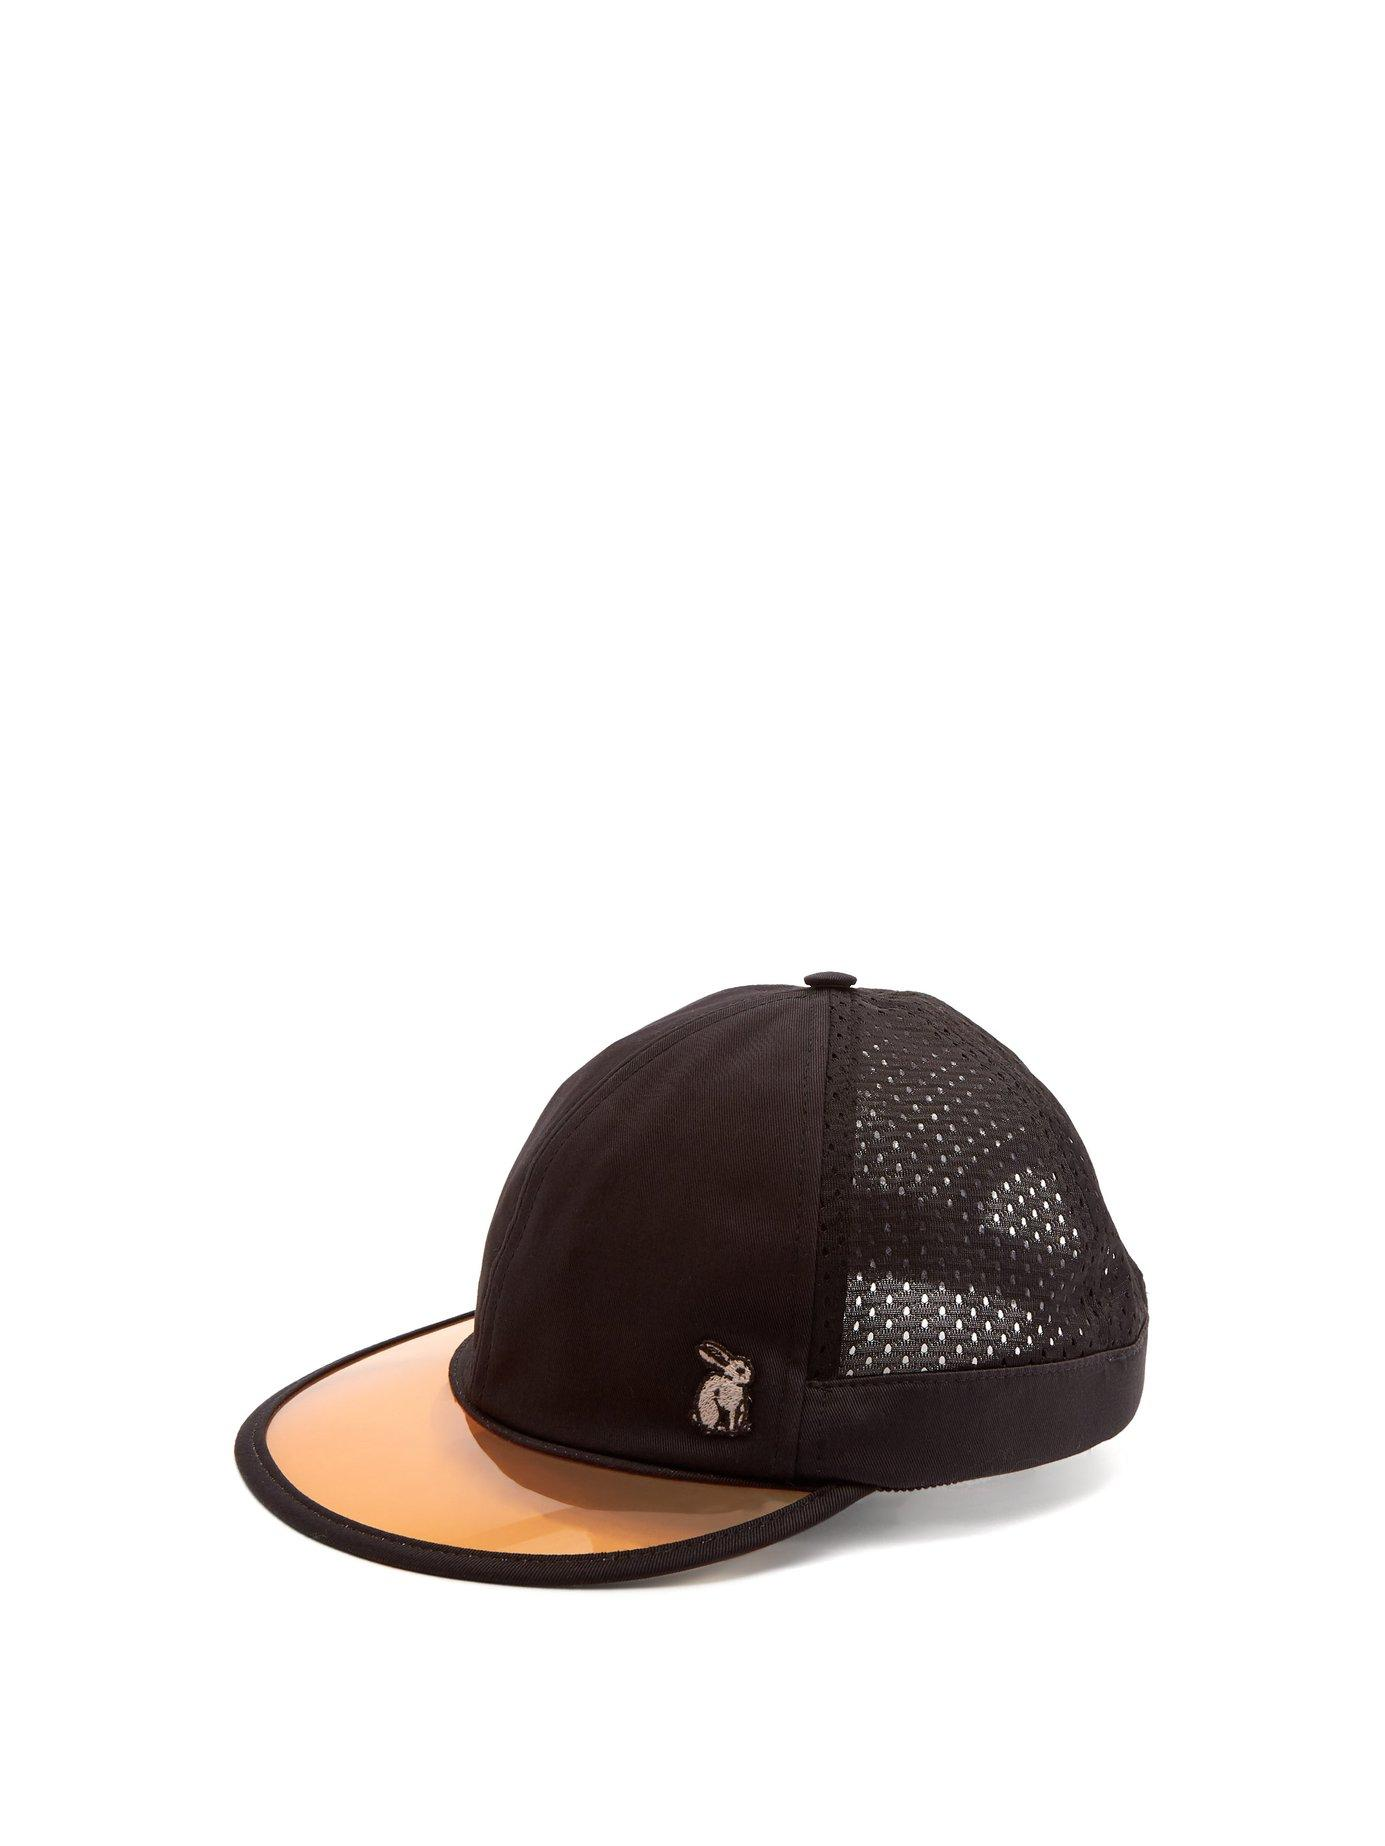 e33f8a14914 Lyst - Gucci Mesh And Cotton Visor Cap in Black for Men - Save 18%